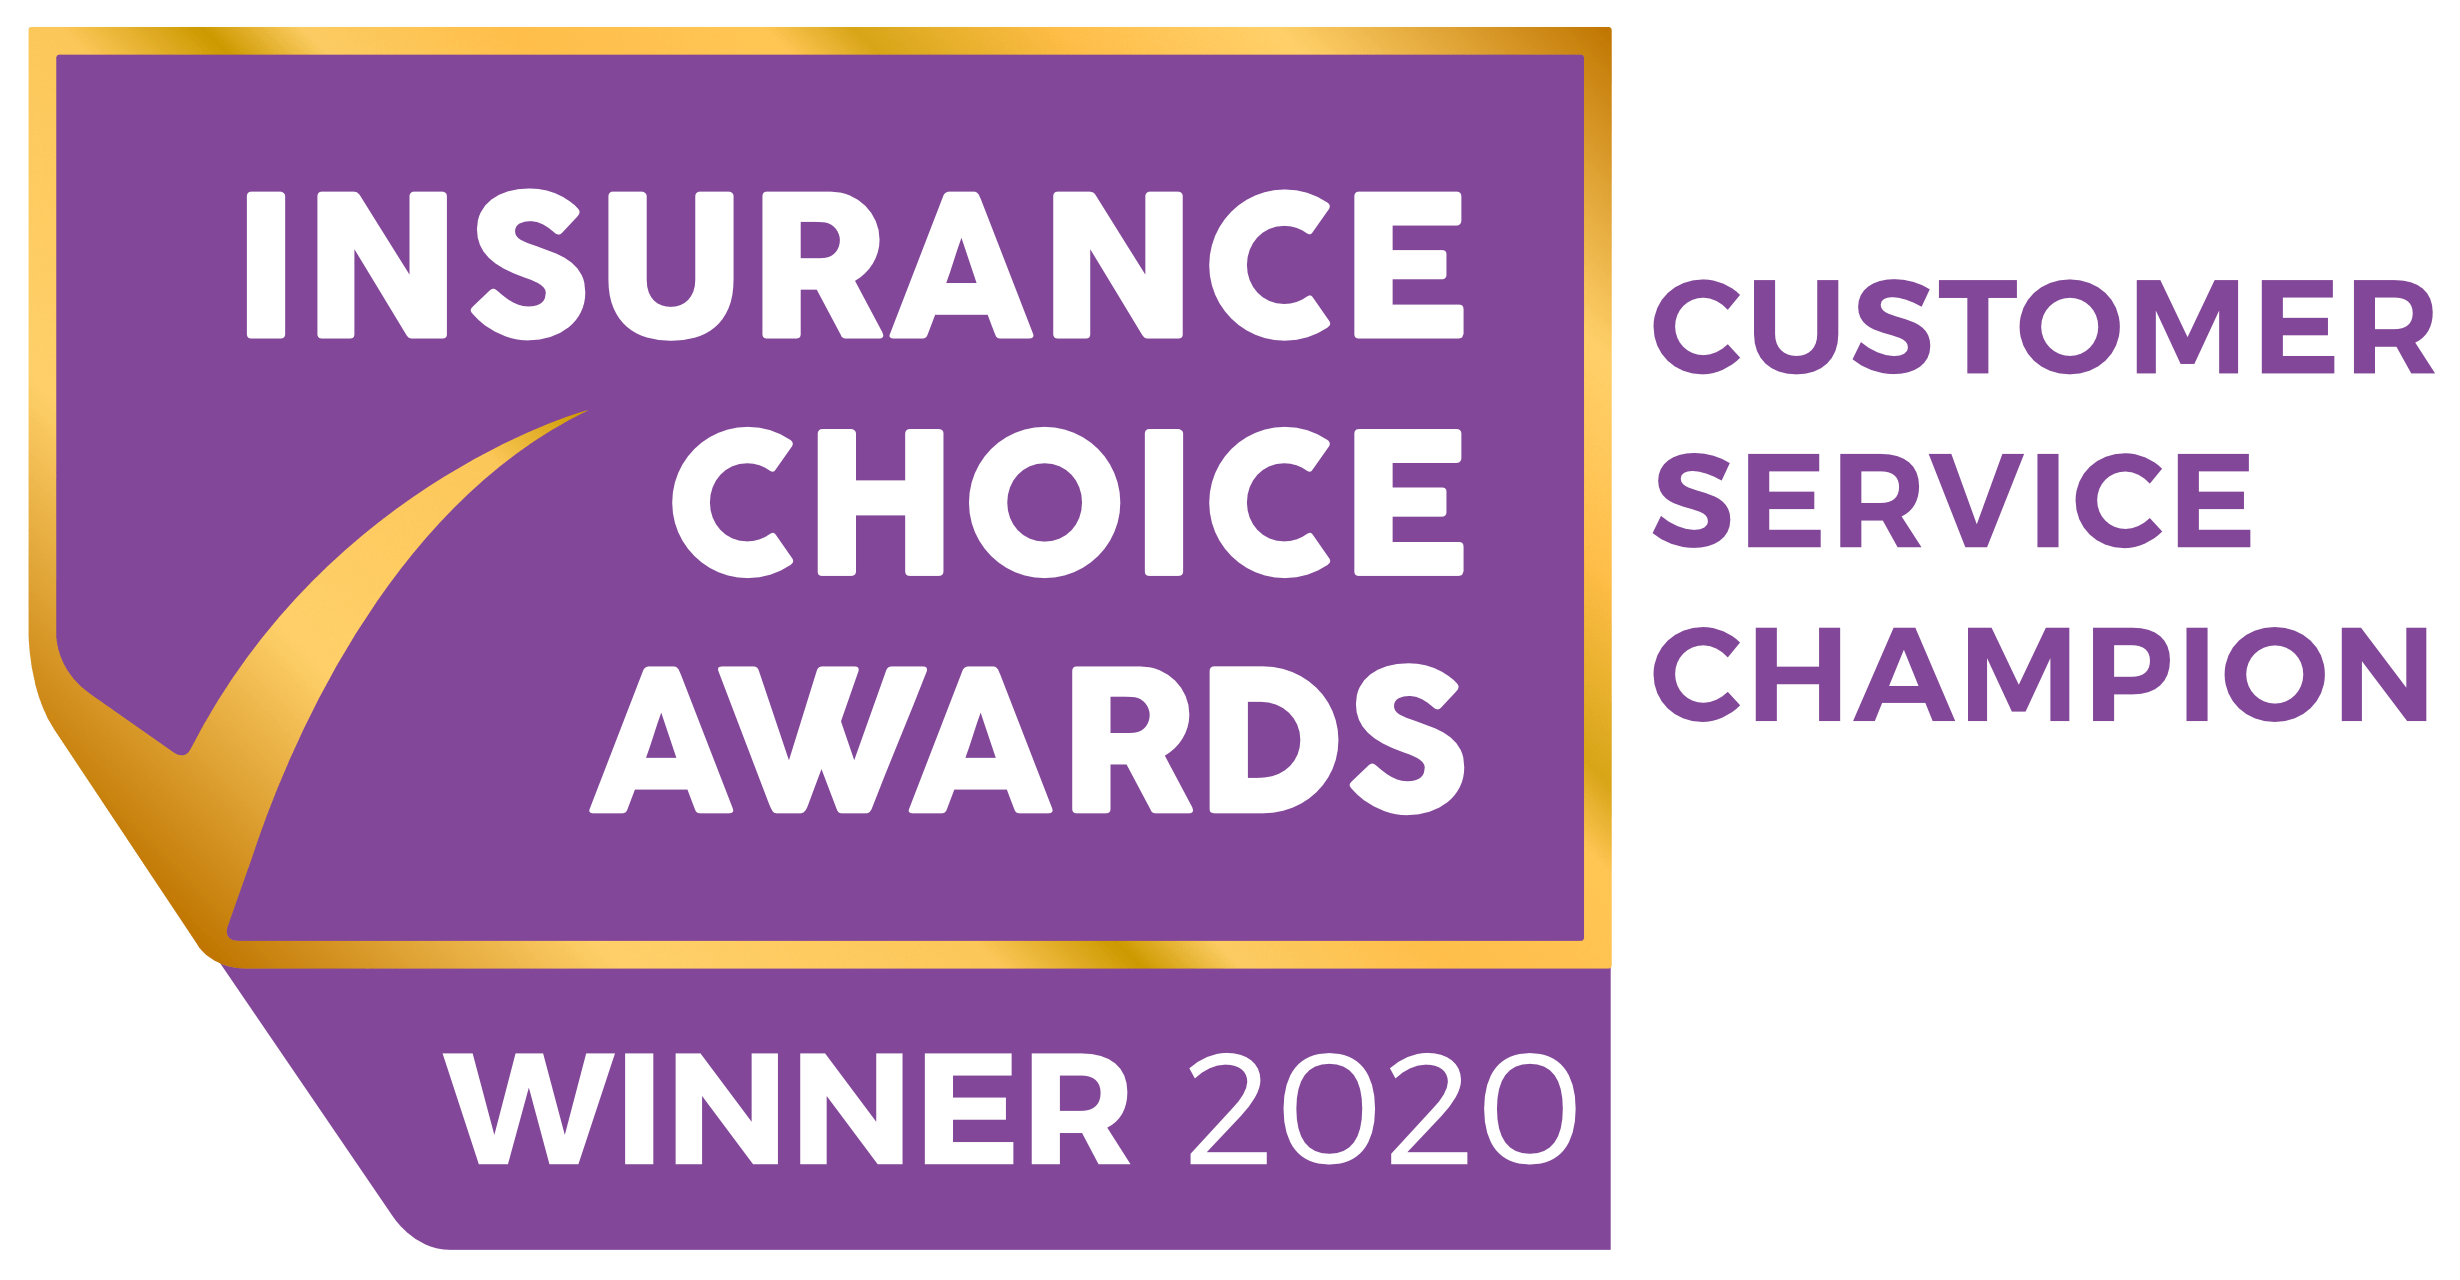 Insurance Choice Awards - Winner 2020 - Customer Service Champion